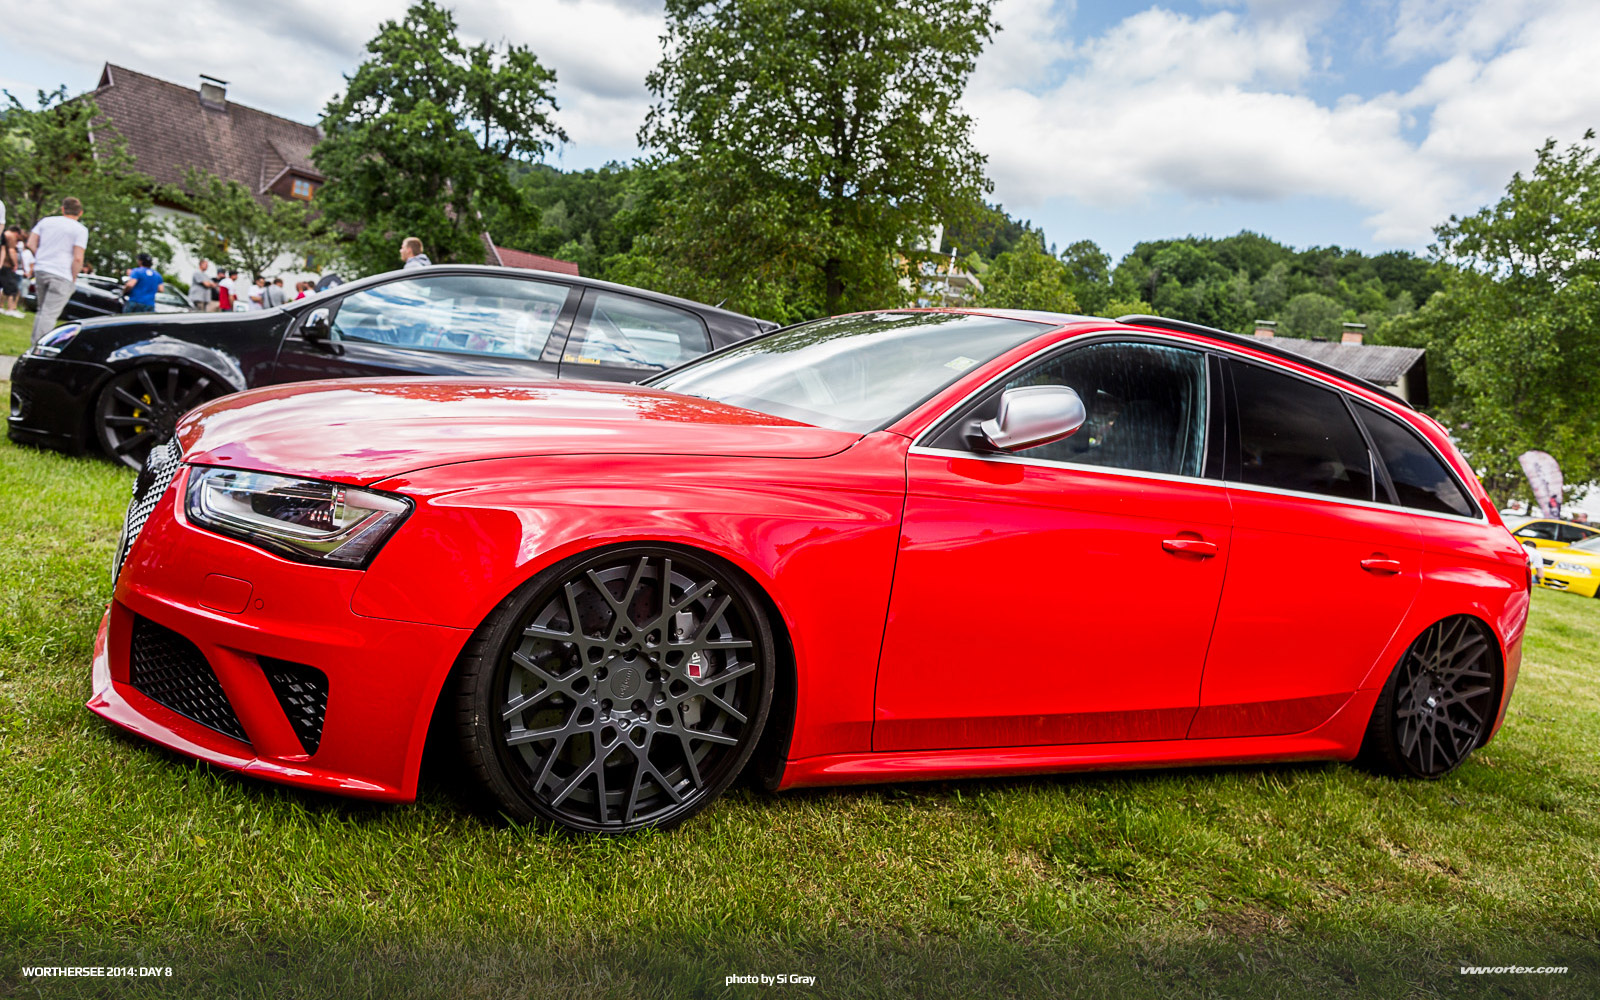 2014-Worthersee-Day-8-Si-Gray-1090